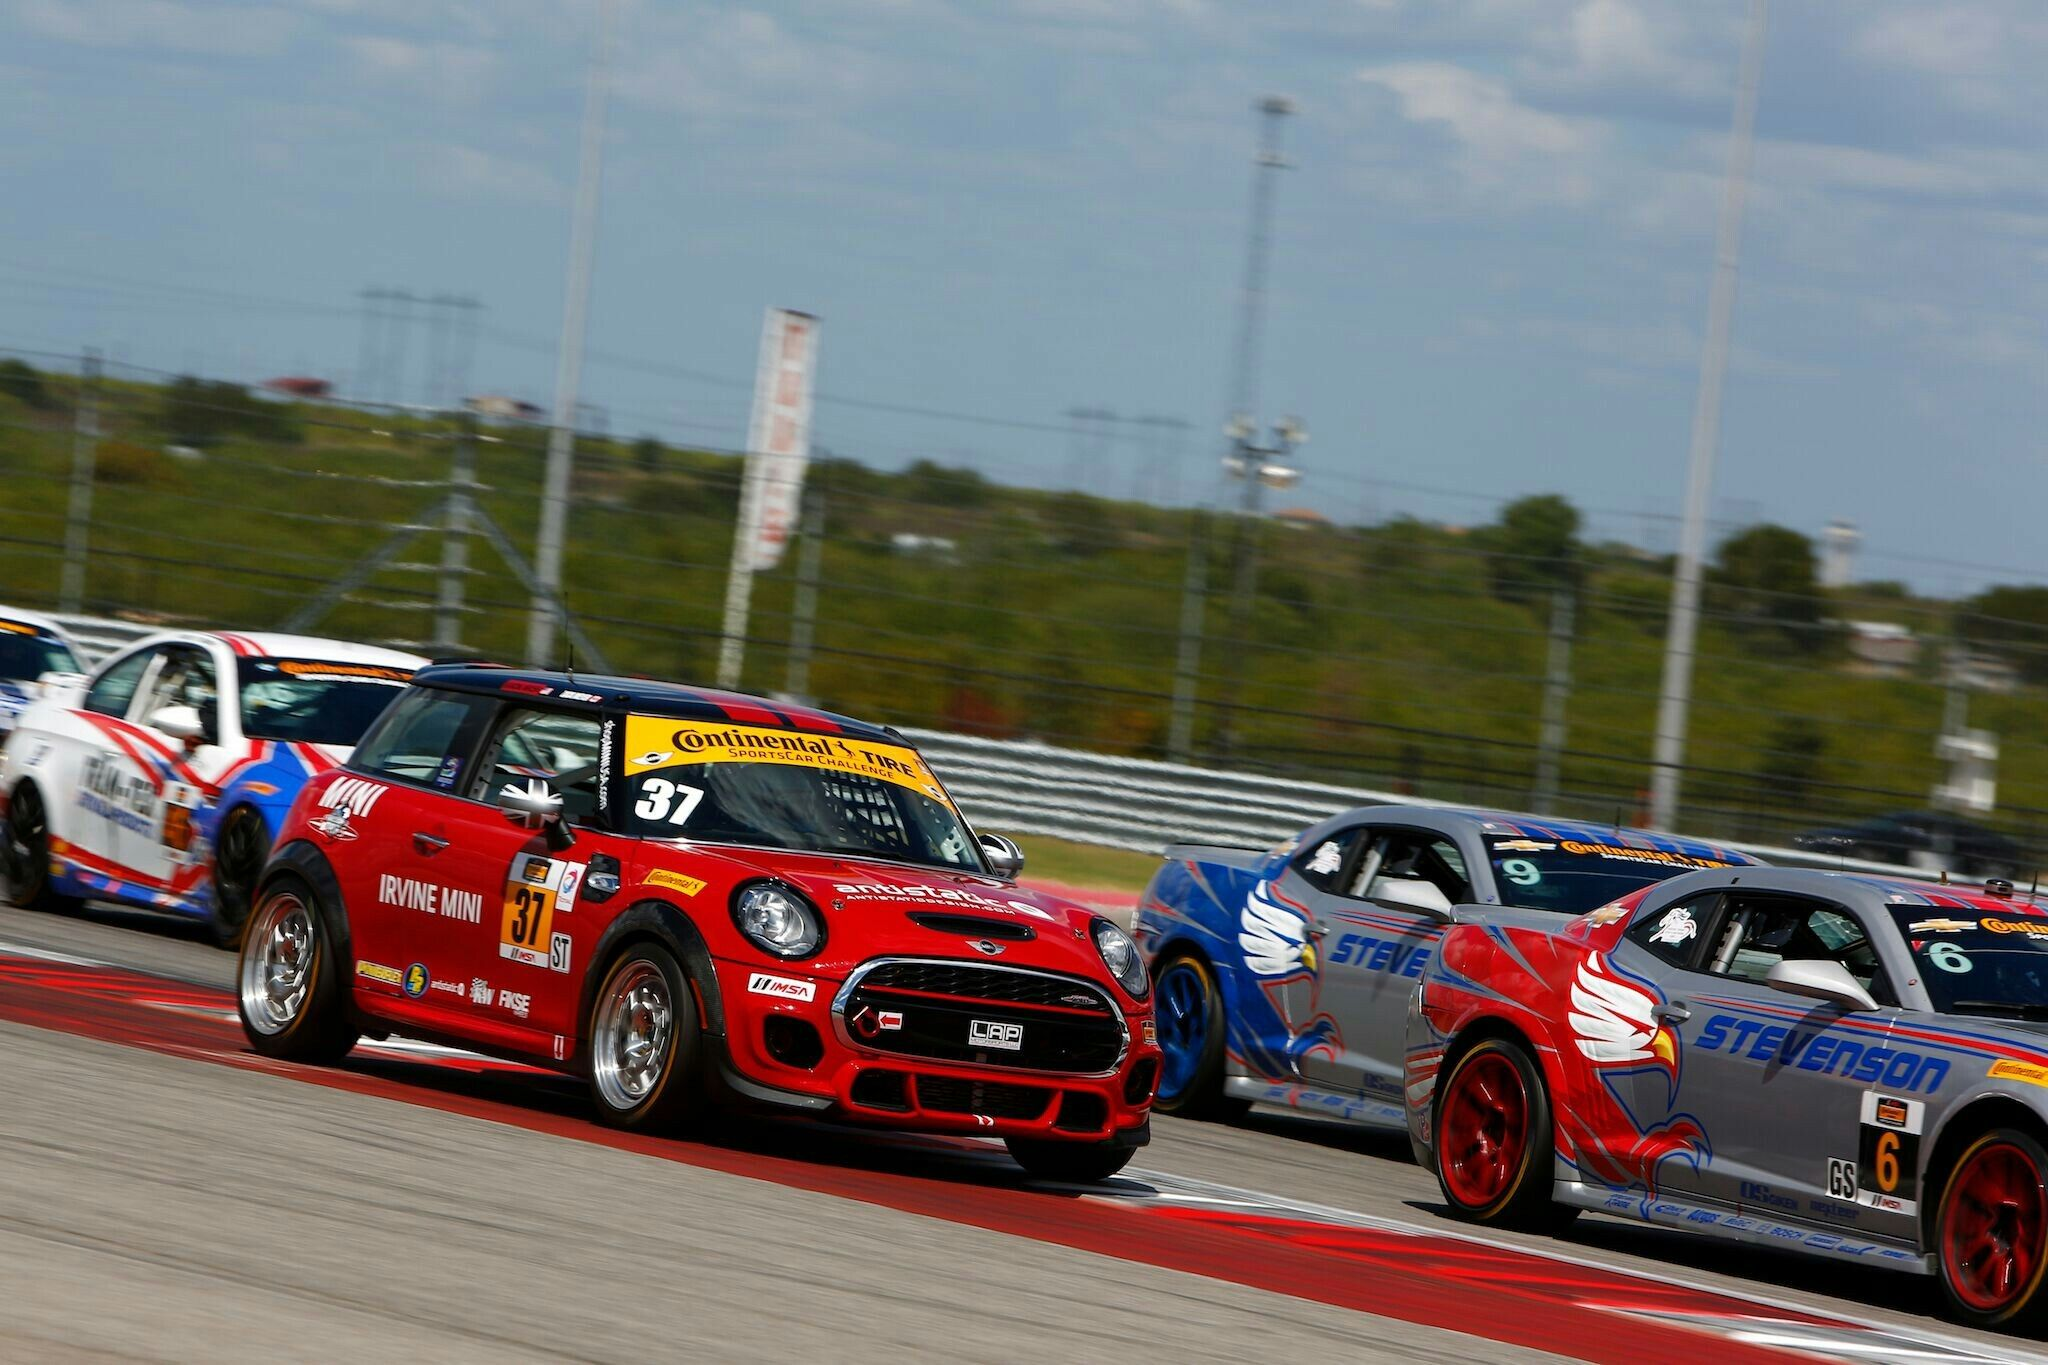 MotoringFile Race Report: MINI John Cooper Works Team at the Circuit of the ... Despite the best efforts of the MINI JCW crew, they were unable to get a qualifying time and were forced to start from the back